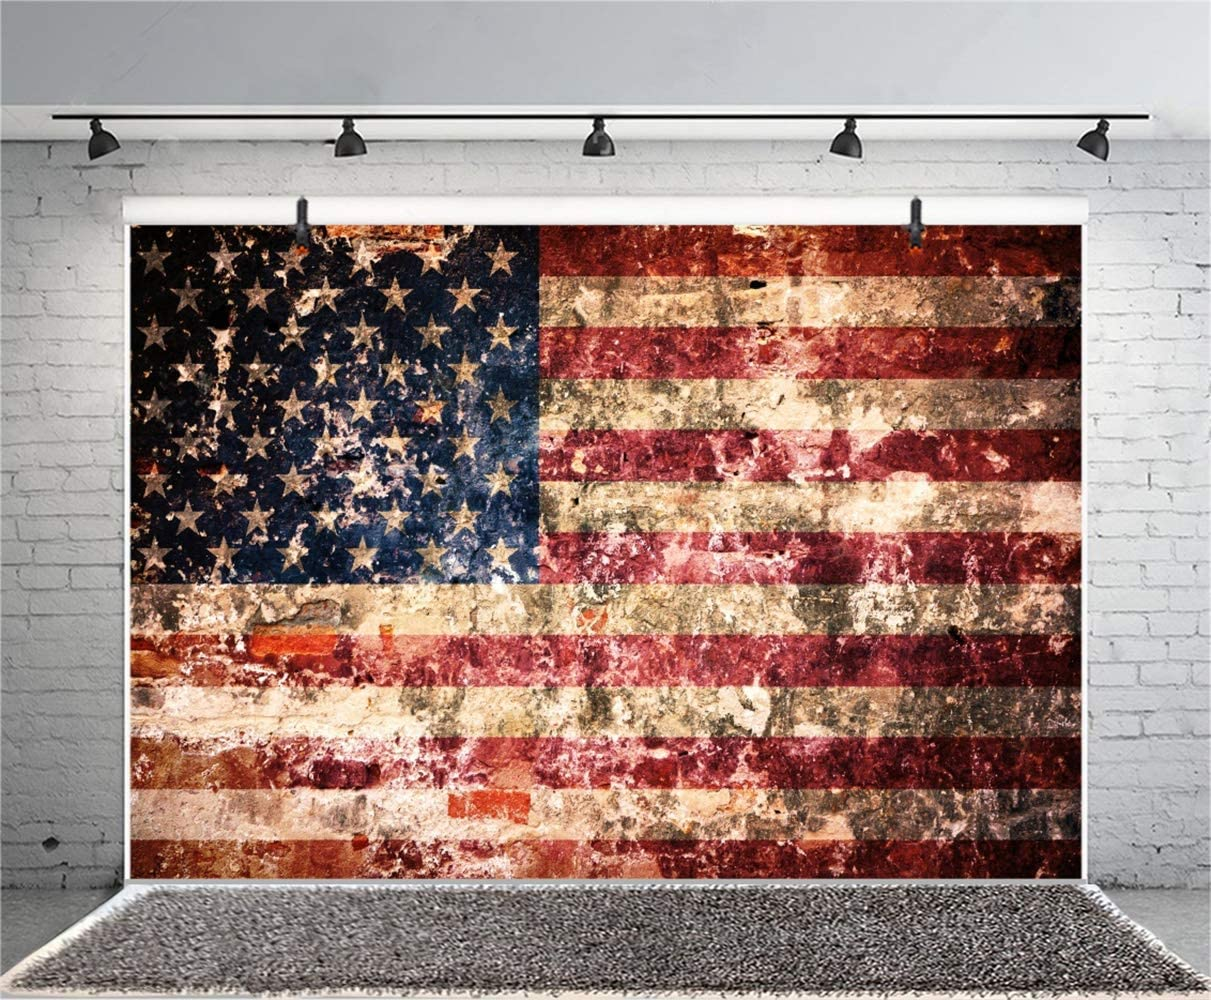 Grunge Dirty Wall US Flag Painting Backdrop Vinyl 10x7ft Independence Day Veteran Day Memorial Day Background Studio Child Kids Baby Portrait Shoot Eagle Scout Ceremony Nostalgia Style